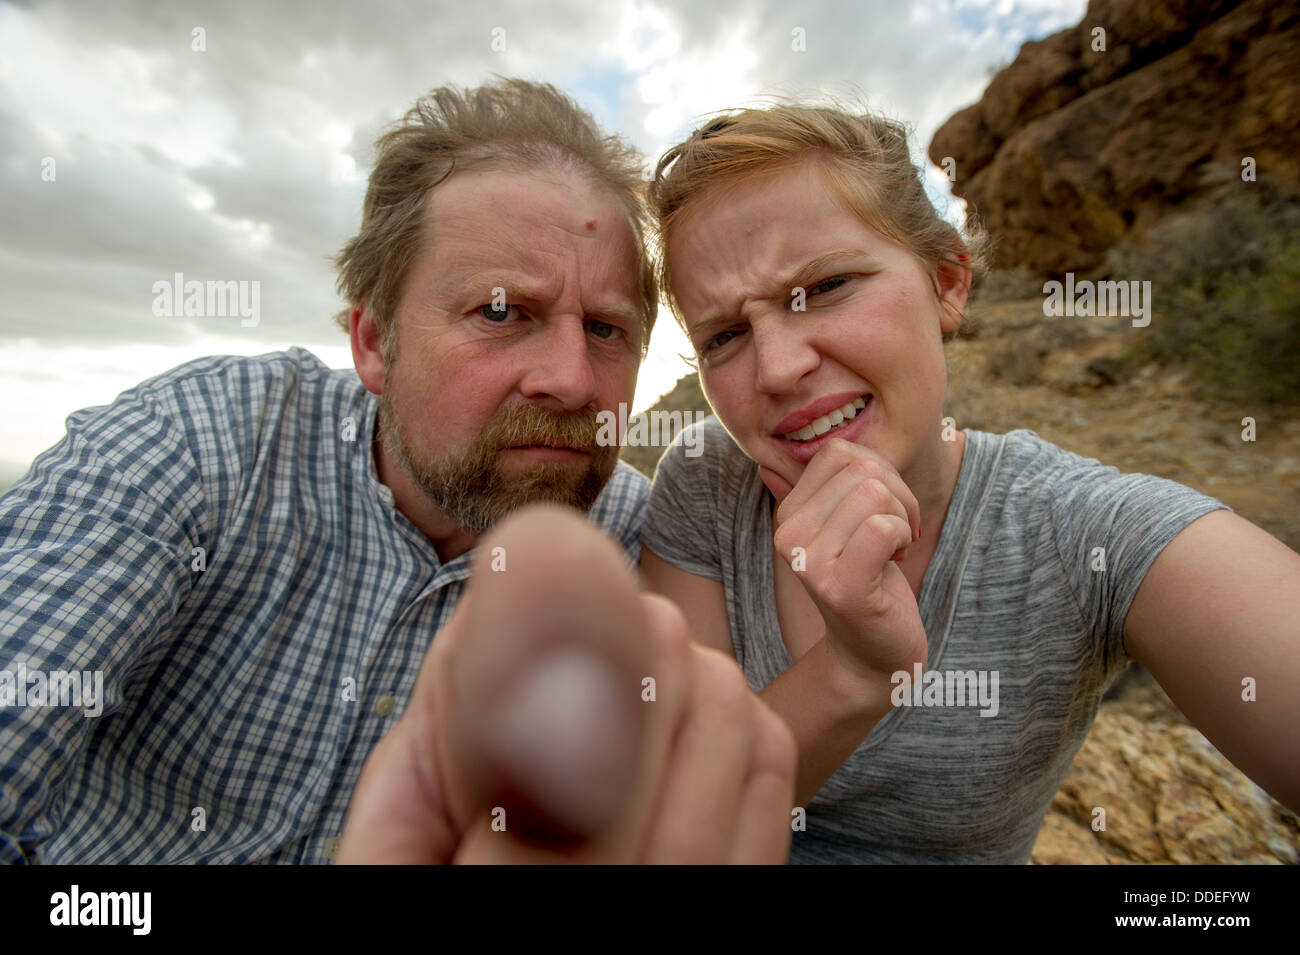 Confused man and Woman - Stock Image